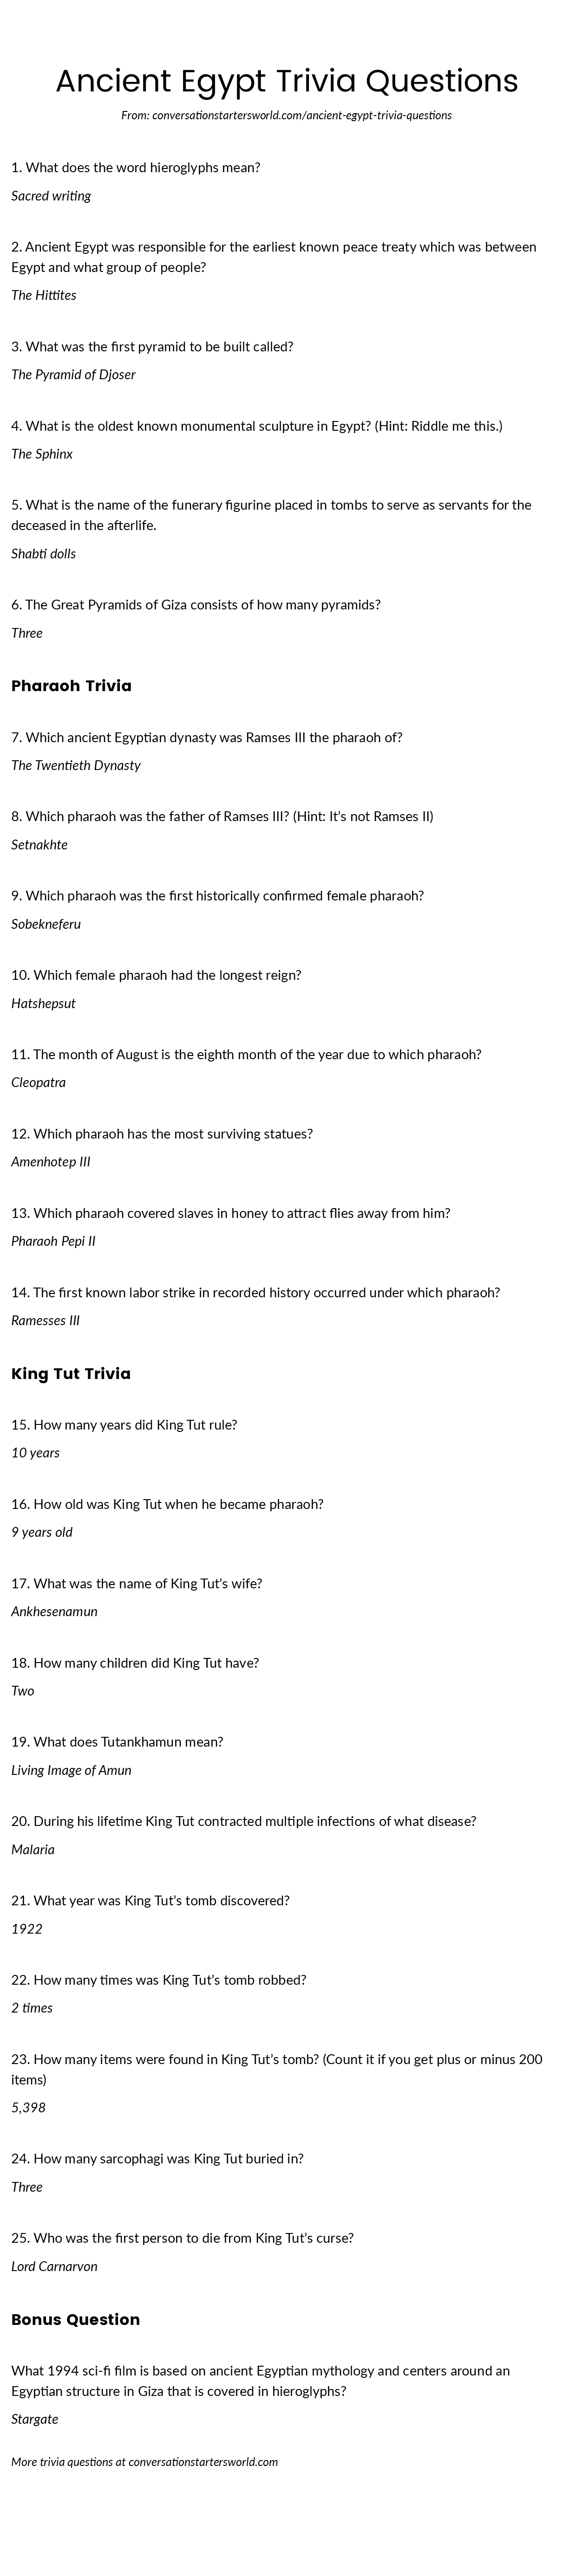 Ancient Egypt Trivia Questions and Answers - Can you answer them all?